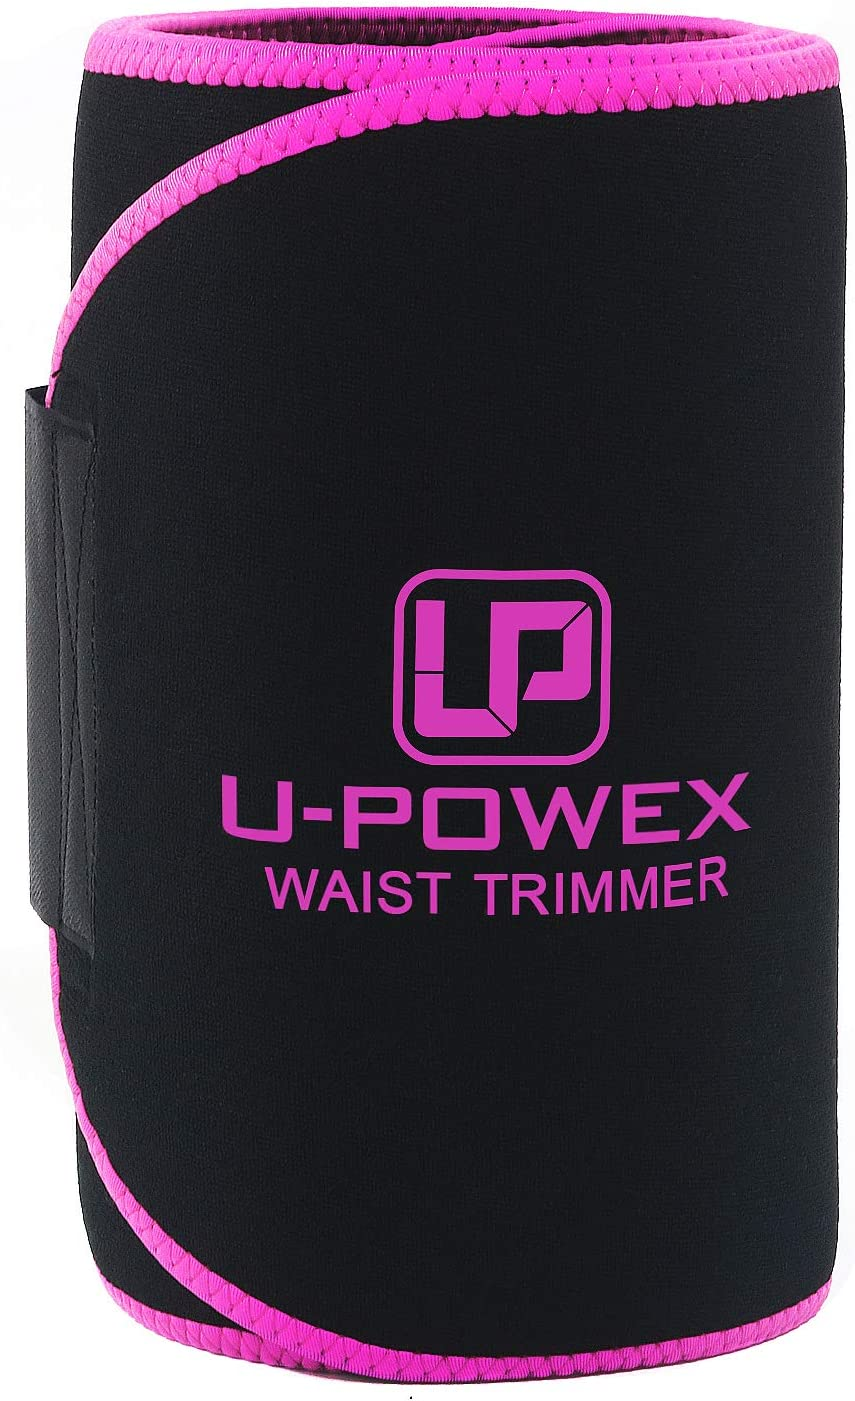 UPOWEX Waist Trainer for Women Men Premium Waist Trimmer Include Carry Bag 100 Life Time Guarantee